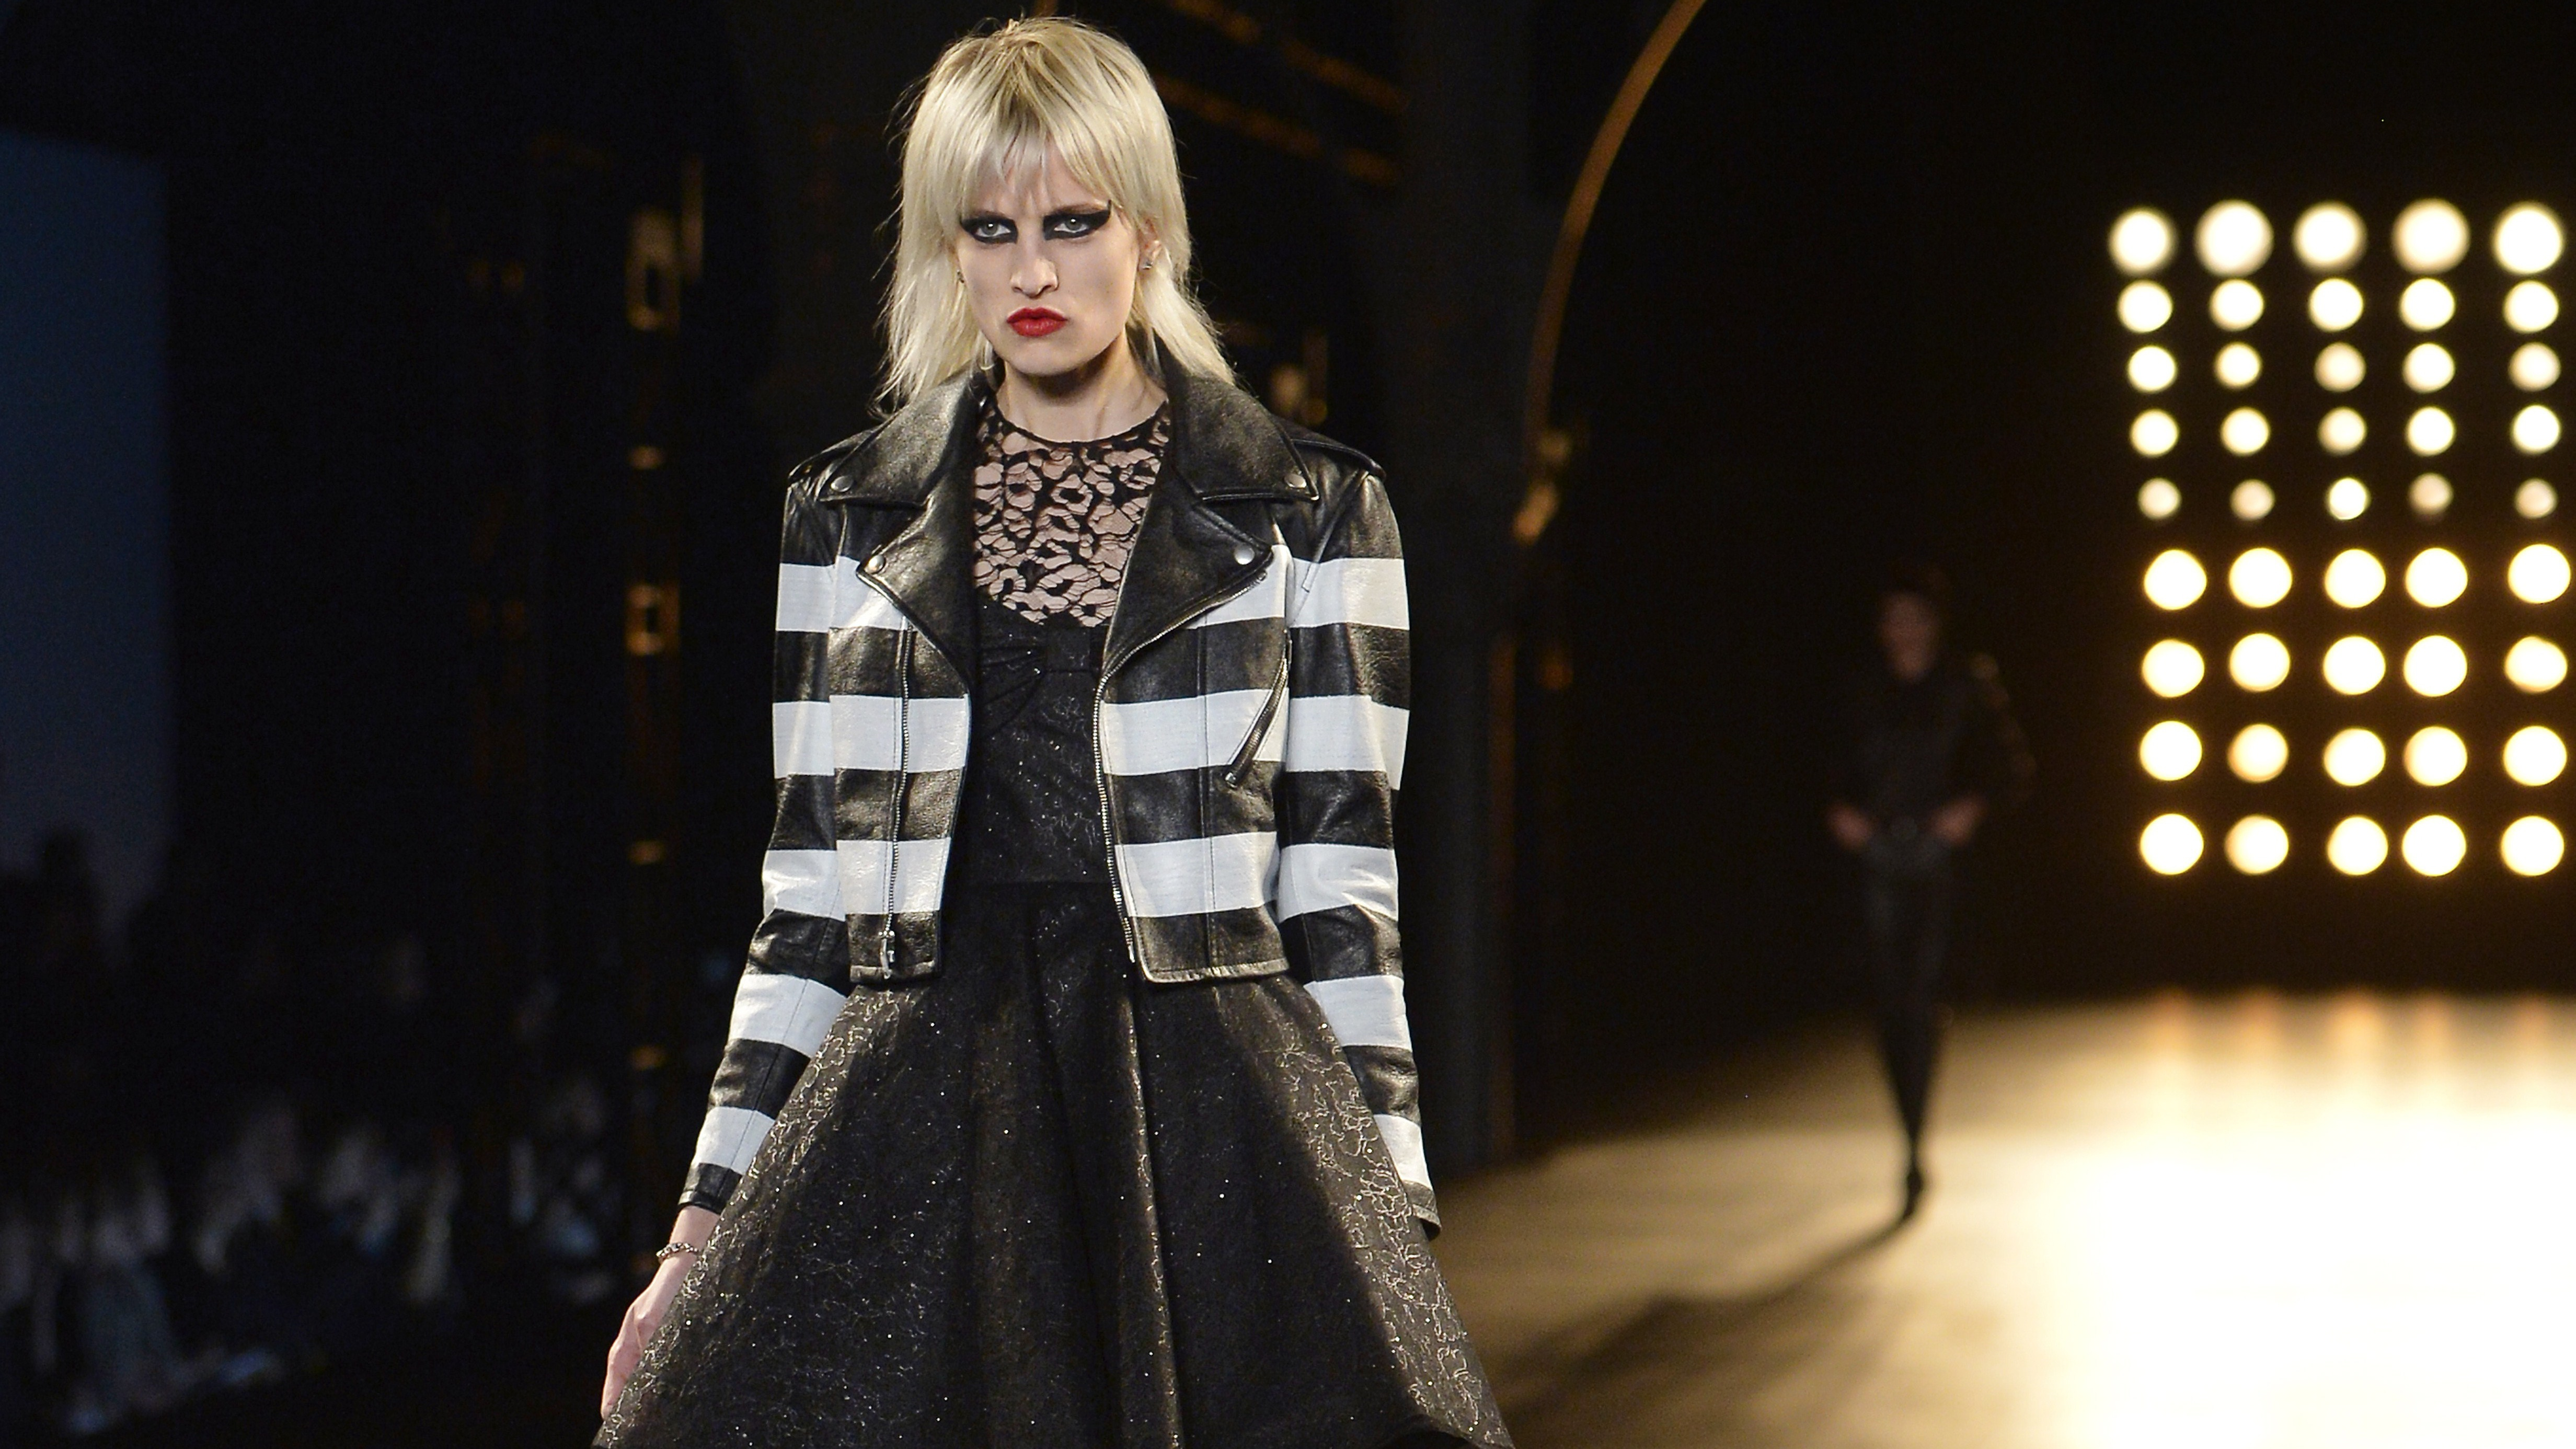 A model presents a creation for Saint-Laurent during the 2015-2016 fall/winter ready-to-wear collection fashion show on March 9, 2015 in Paris.